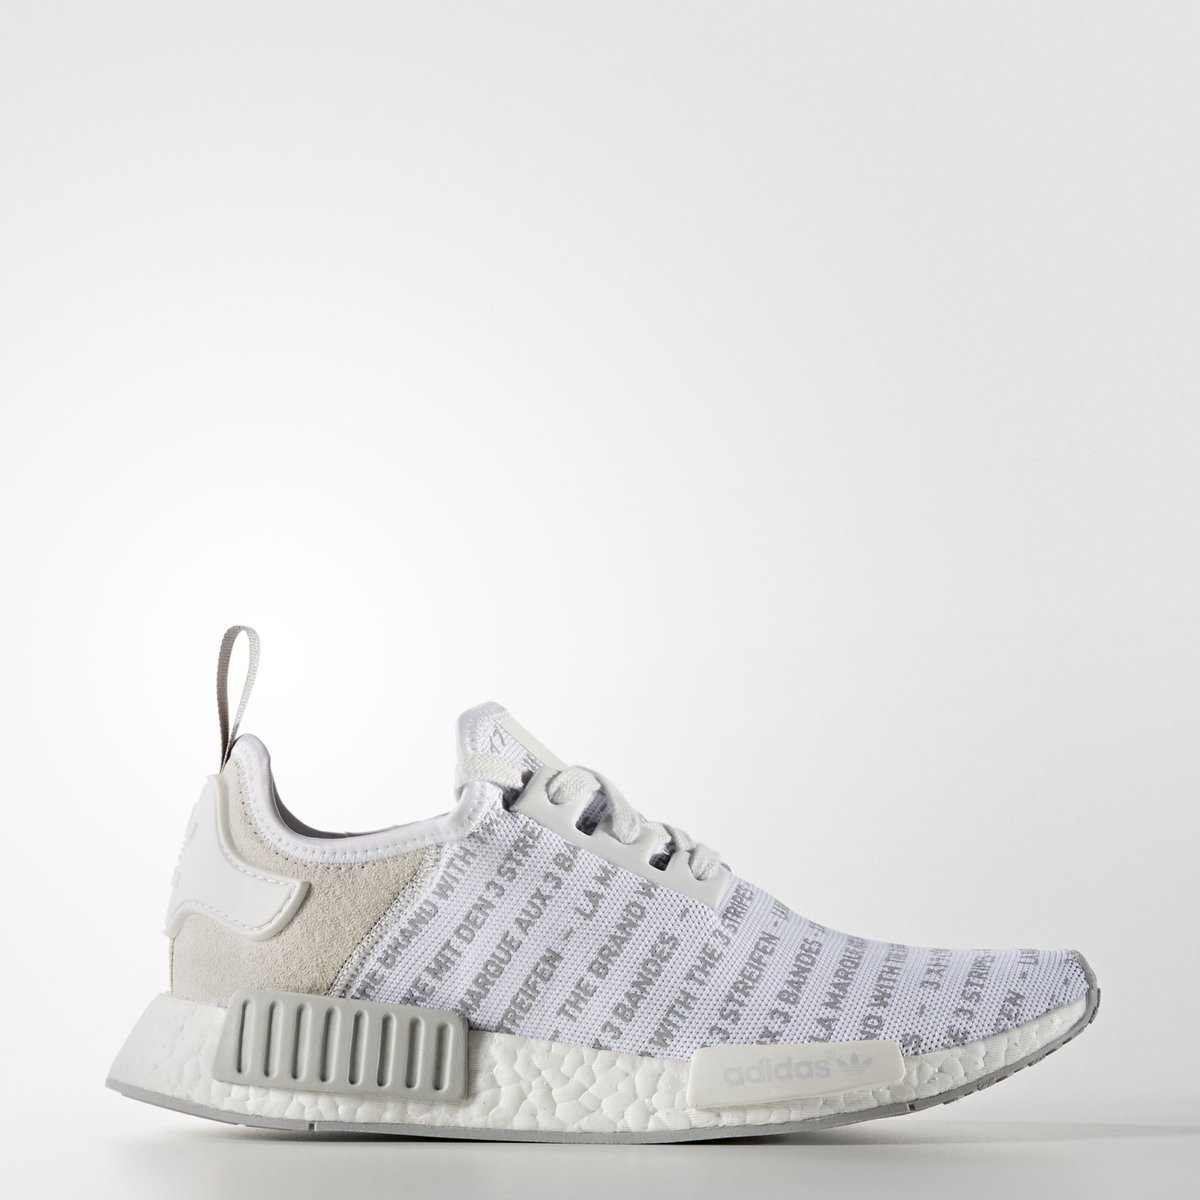 2eaaa0a229712 Official adidas images of an upcoming NMD Runner Print